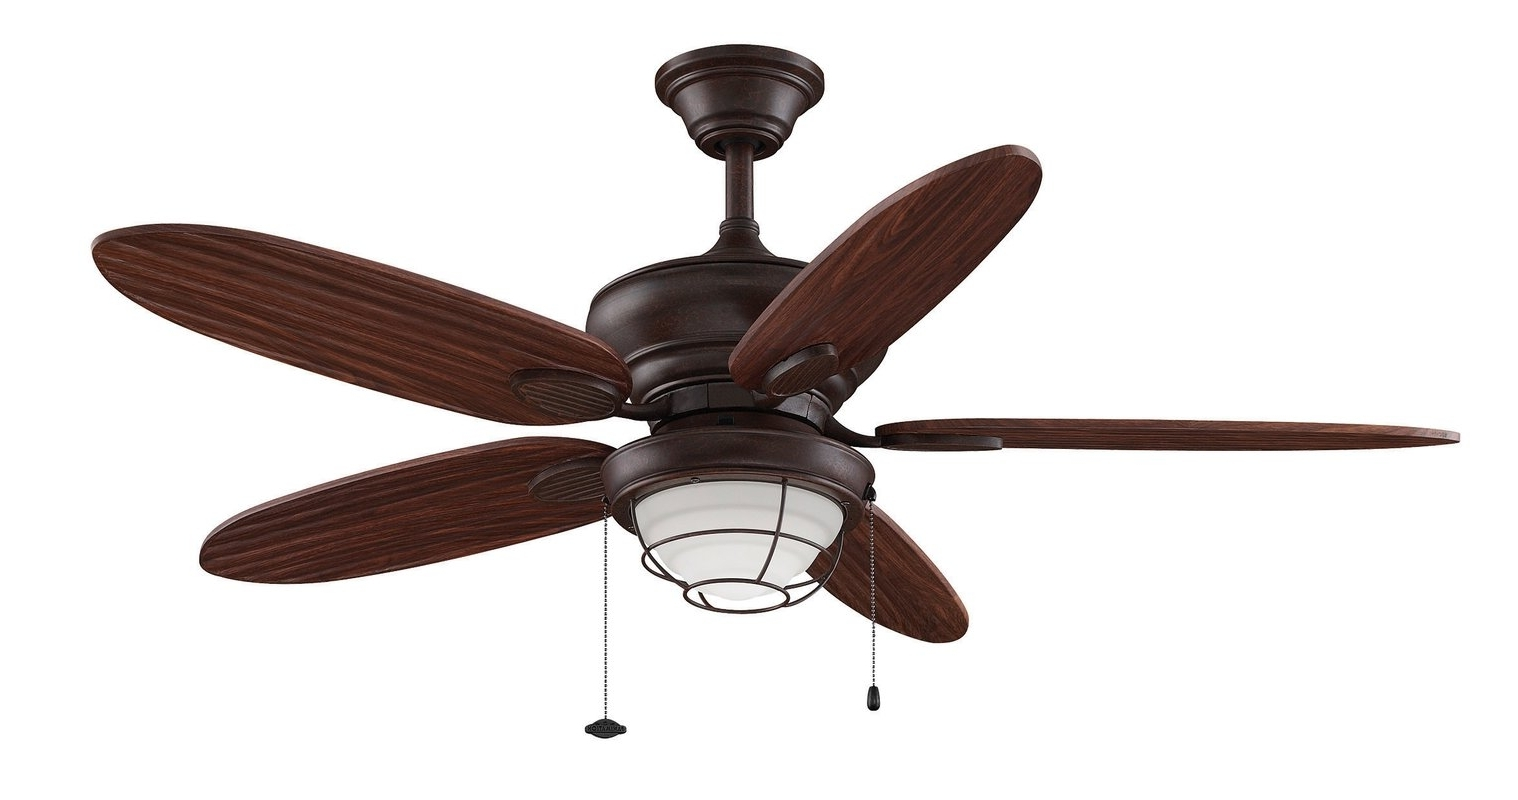 Fashionable Outdoor Ceiling Fans C Wayfair Ceiling Fans With Lights Simple Throughout Wayfair Outdoor Ceiling Fans (View 5 of 20)